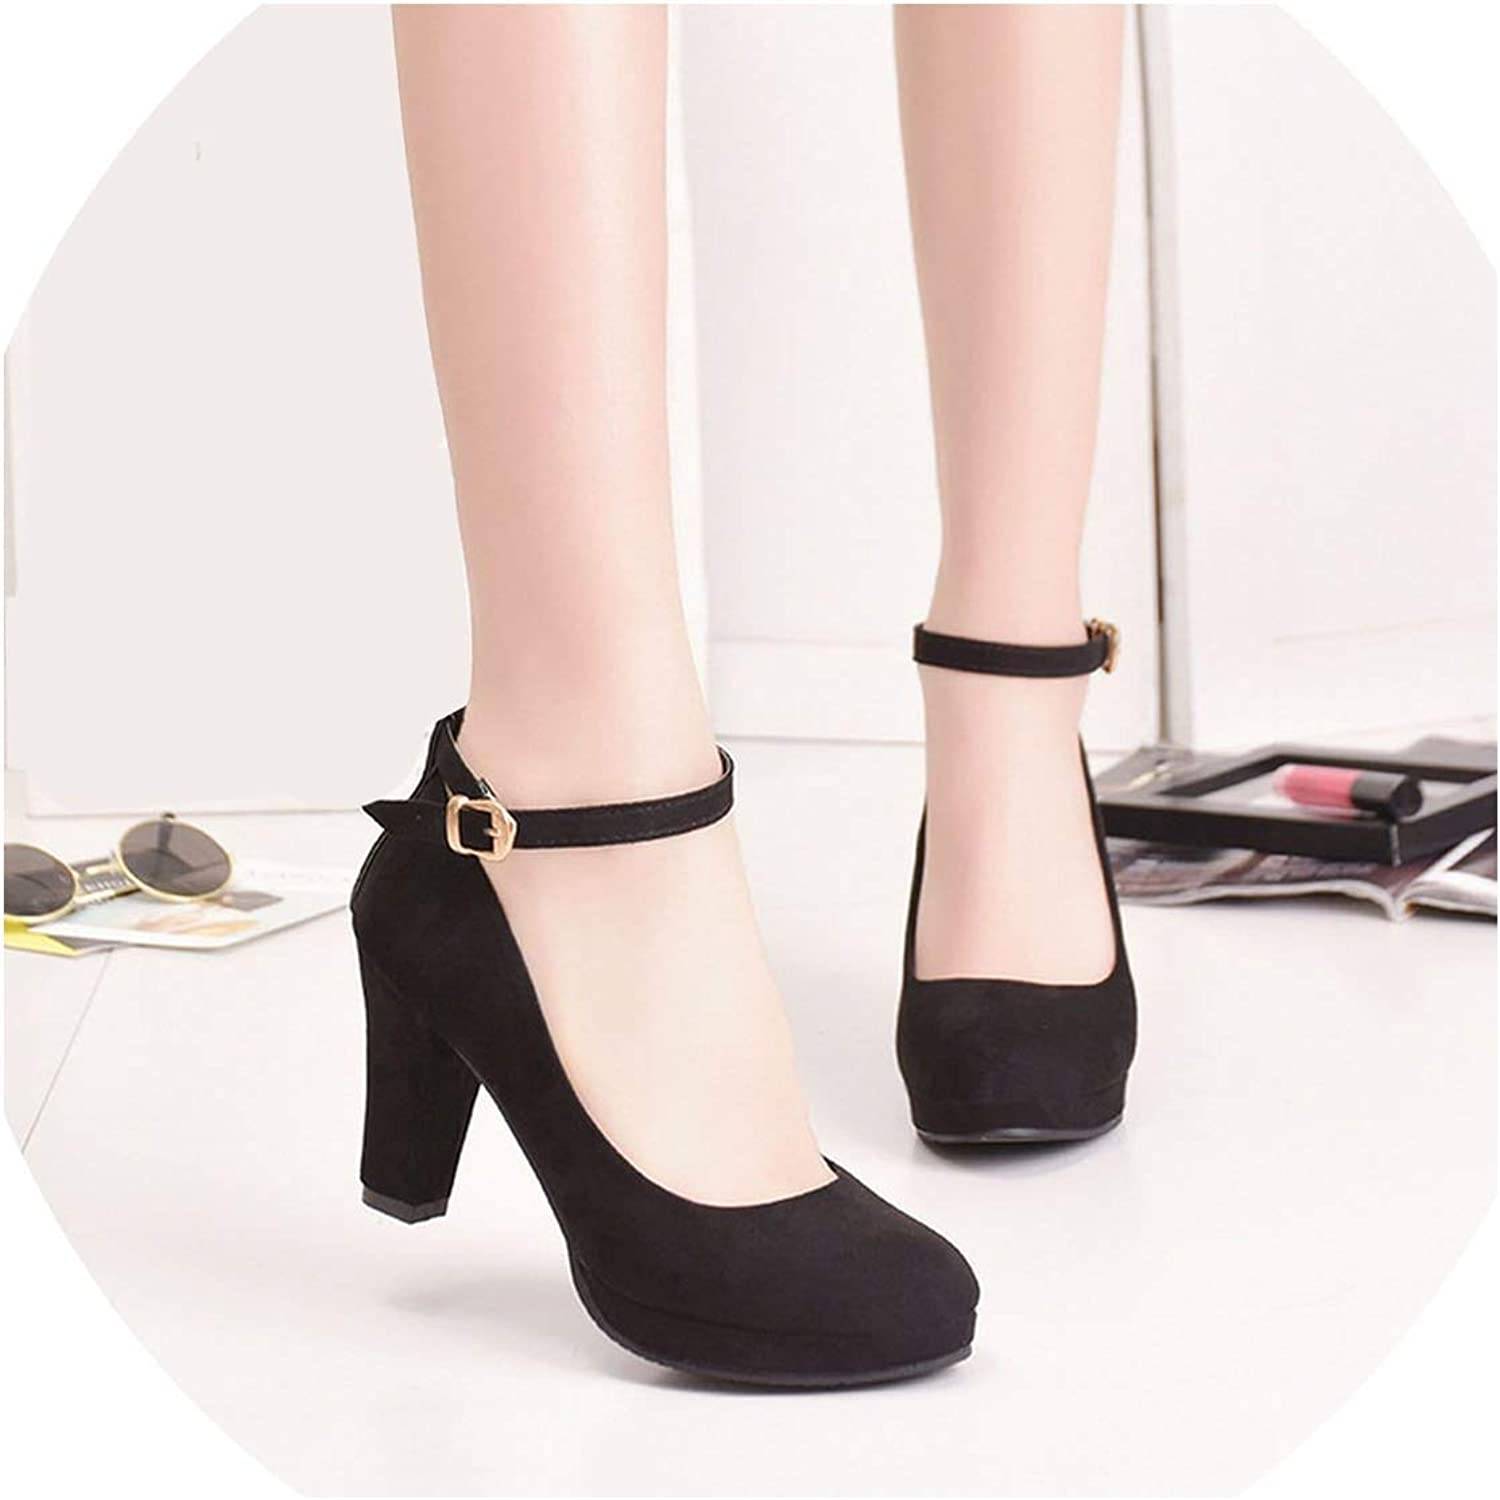 Pleasantlyday Spring shoes Women's High Heels Sexy Flock Pumps Bride Thin Pointed Comfortable